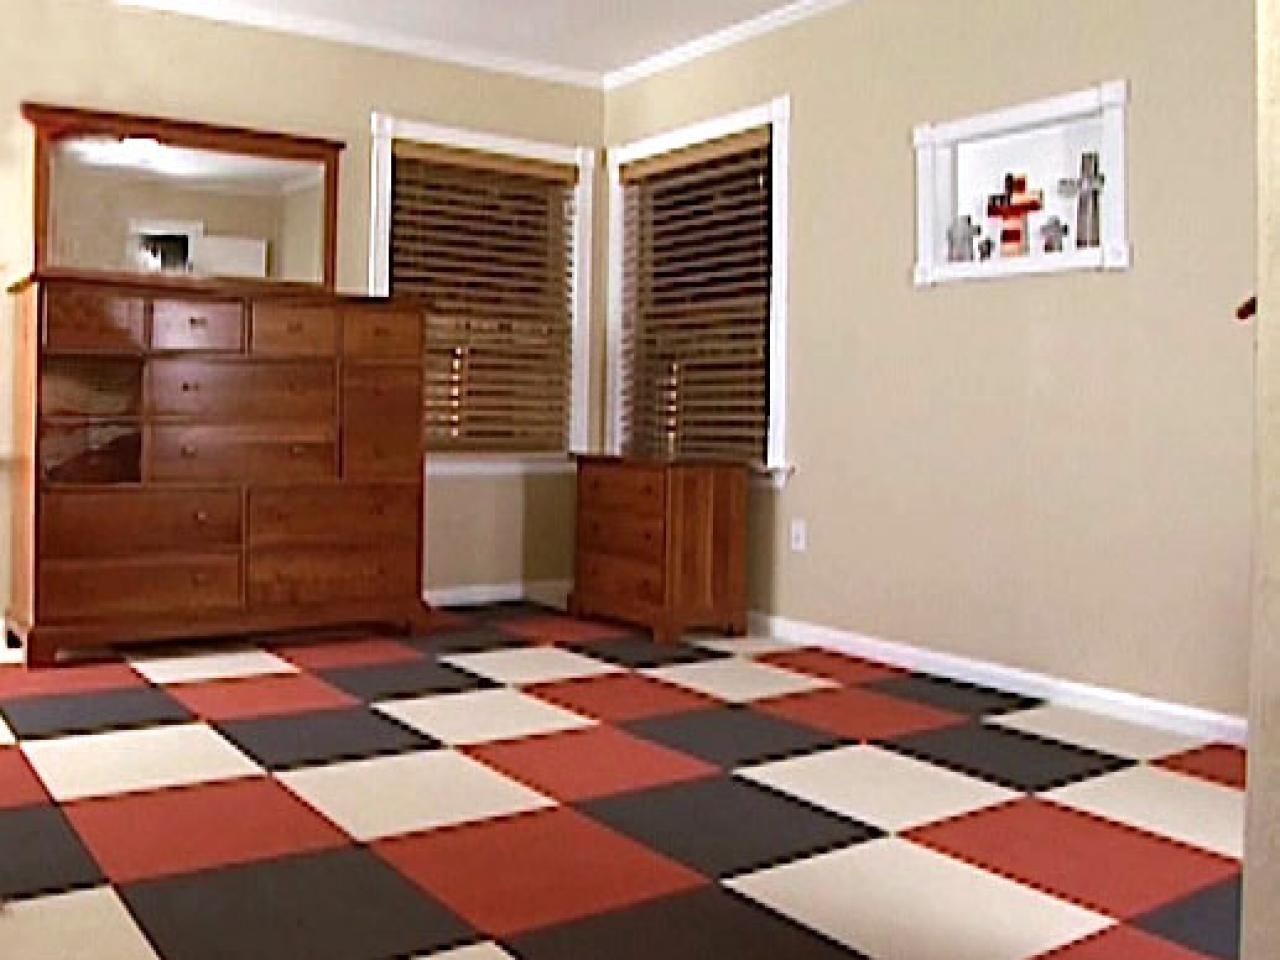 Carpet Tile Ideas how to install carpet tiles | hgtv